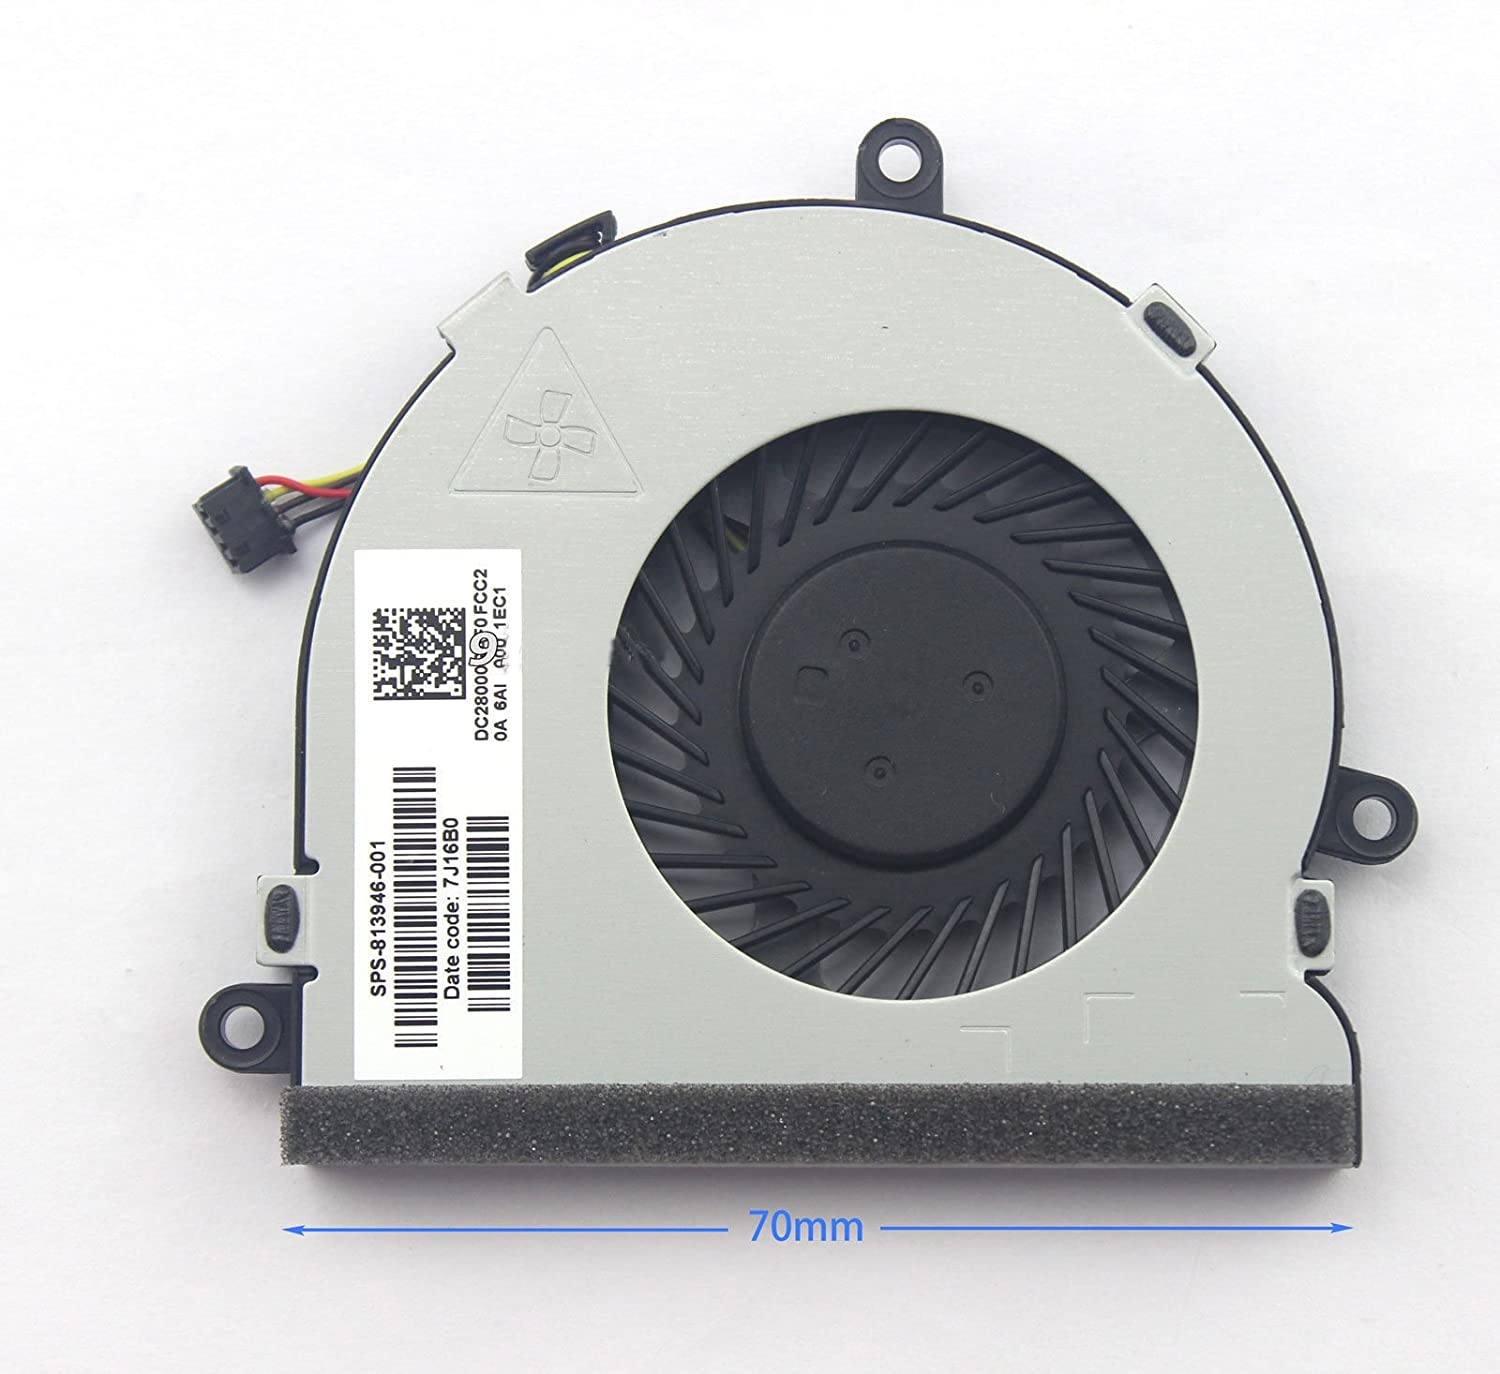 New Cpu Cooling Cooler Fan For Hp 15 Ba Ba008ca Notebook Ba004ax Ba009dx Ba010nr Ba013cl Ba138ca Ba140ca Ba113cl Computers Accessories